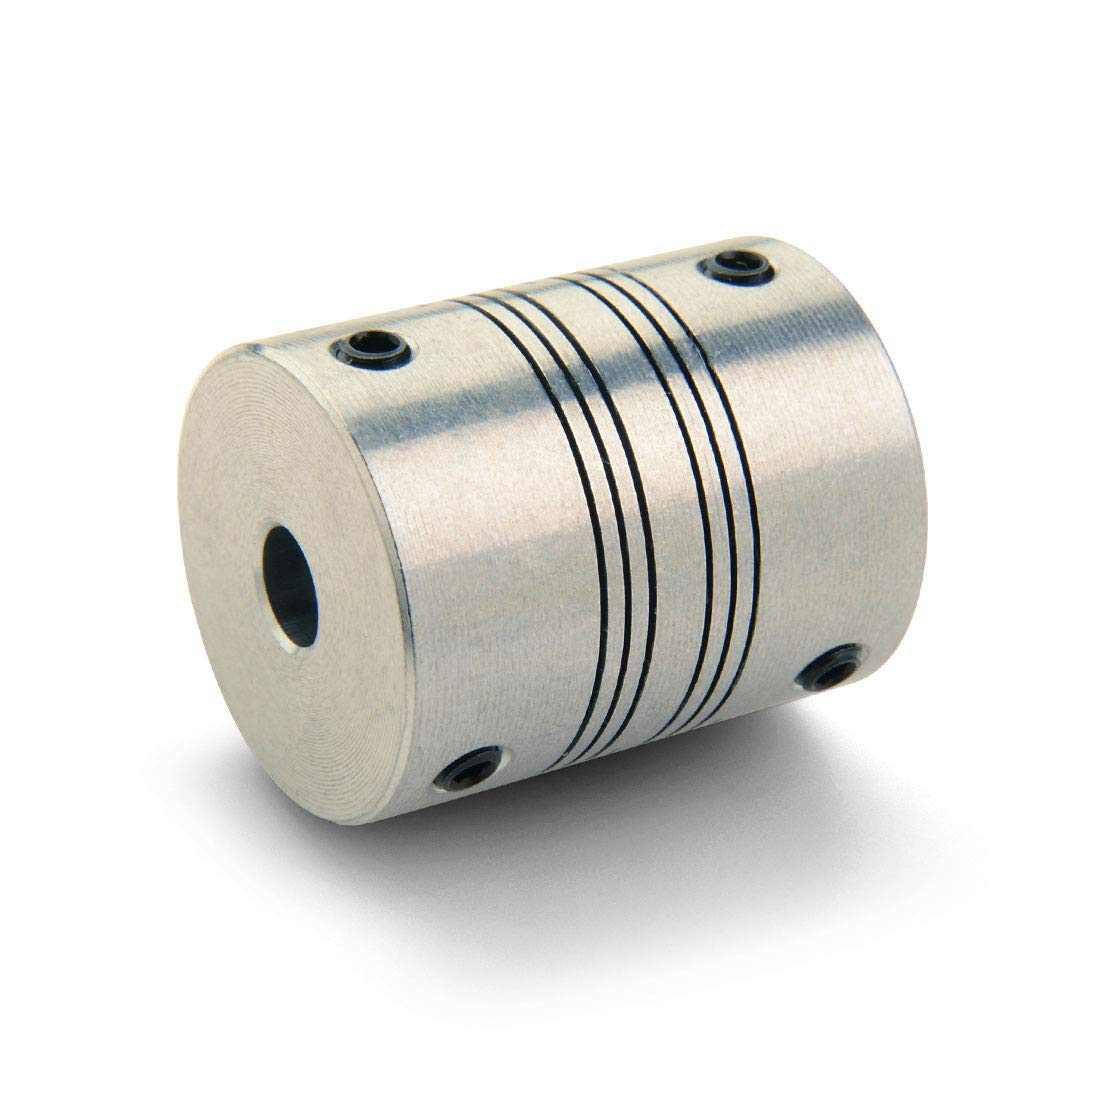 Ruland Clearance SALE Cheap sale Limited time PSR8-2-1.5-A Set Screw Polished Aluminum Coupling Beam